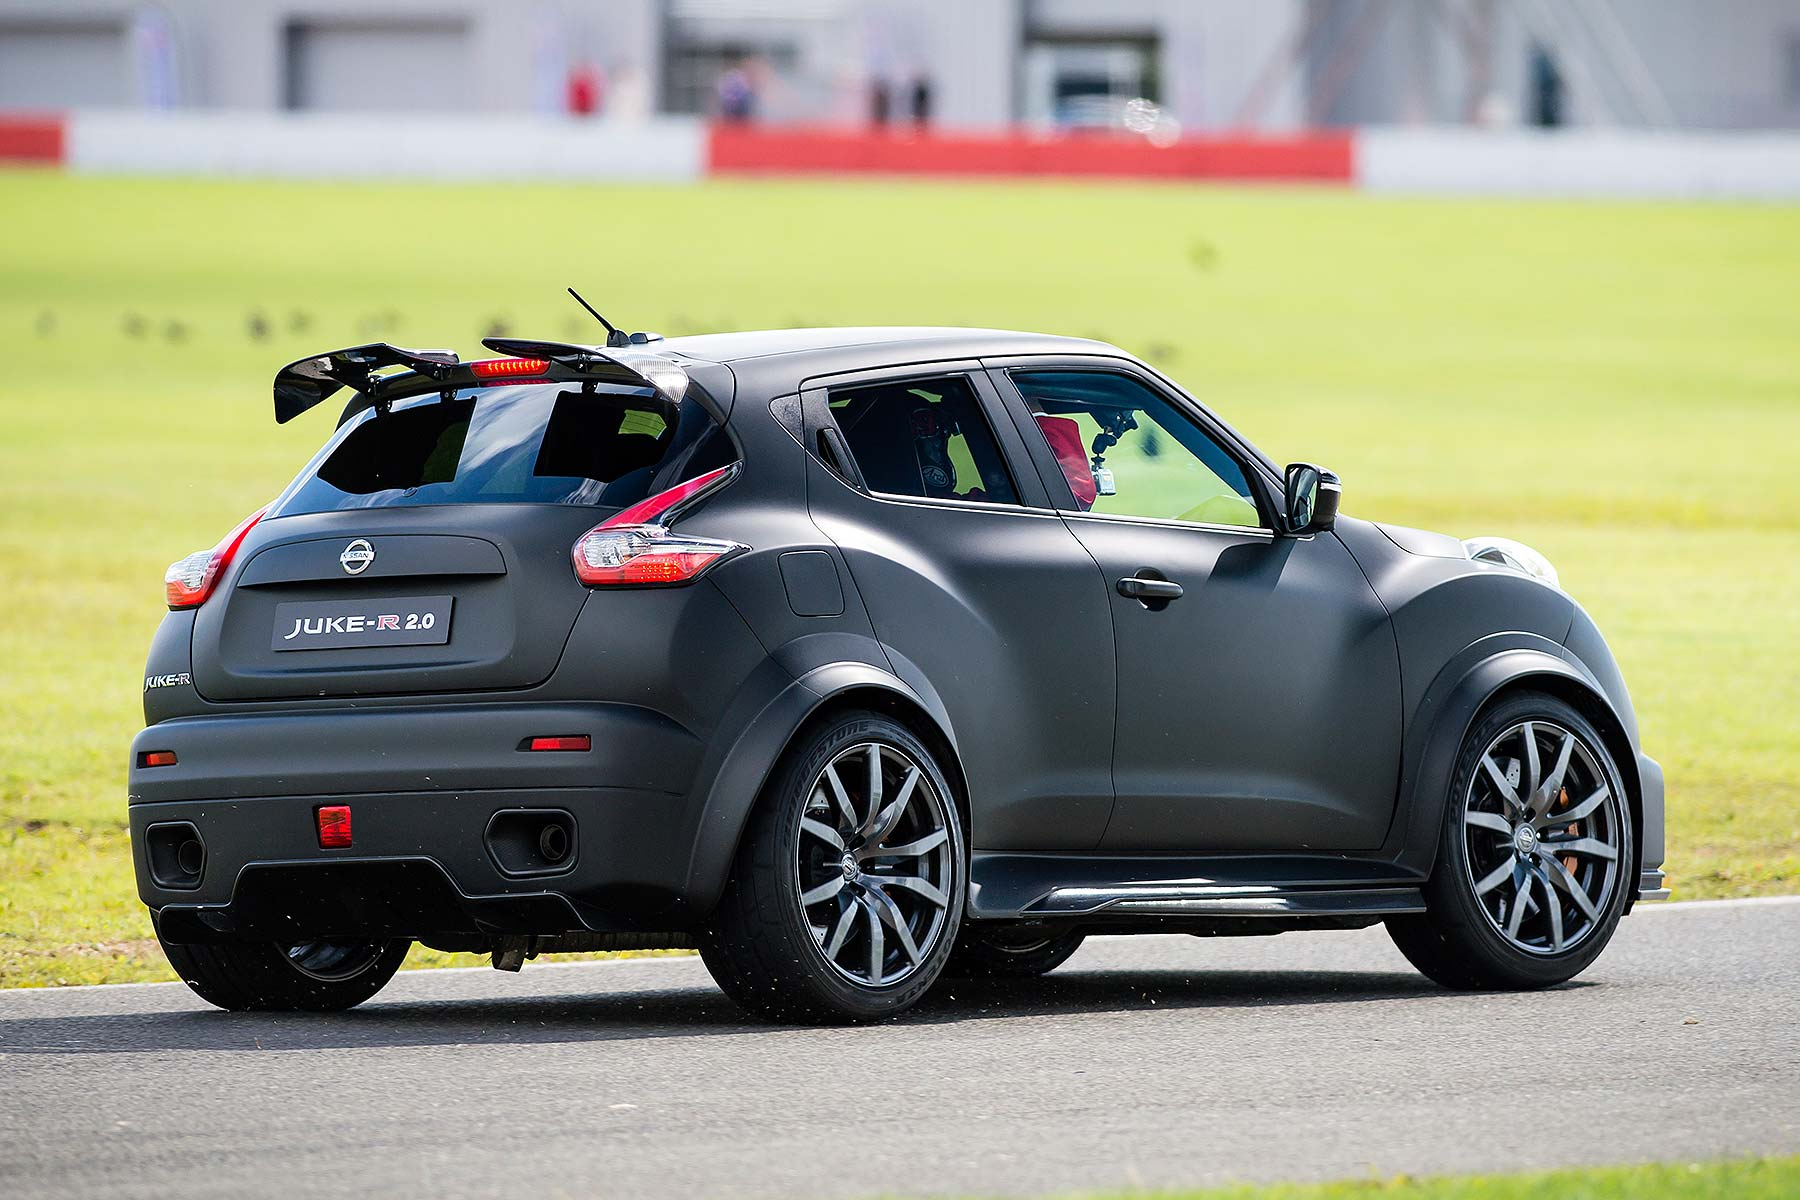 nissan juke r 2 0 review 2015 first drive motoring research. Black Bedroom Furniture Sets. Home Design Ideas